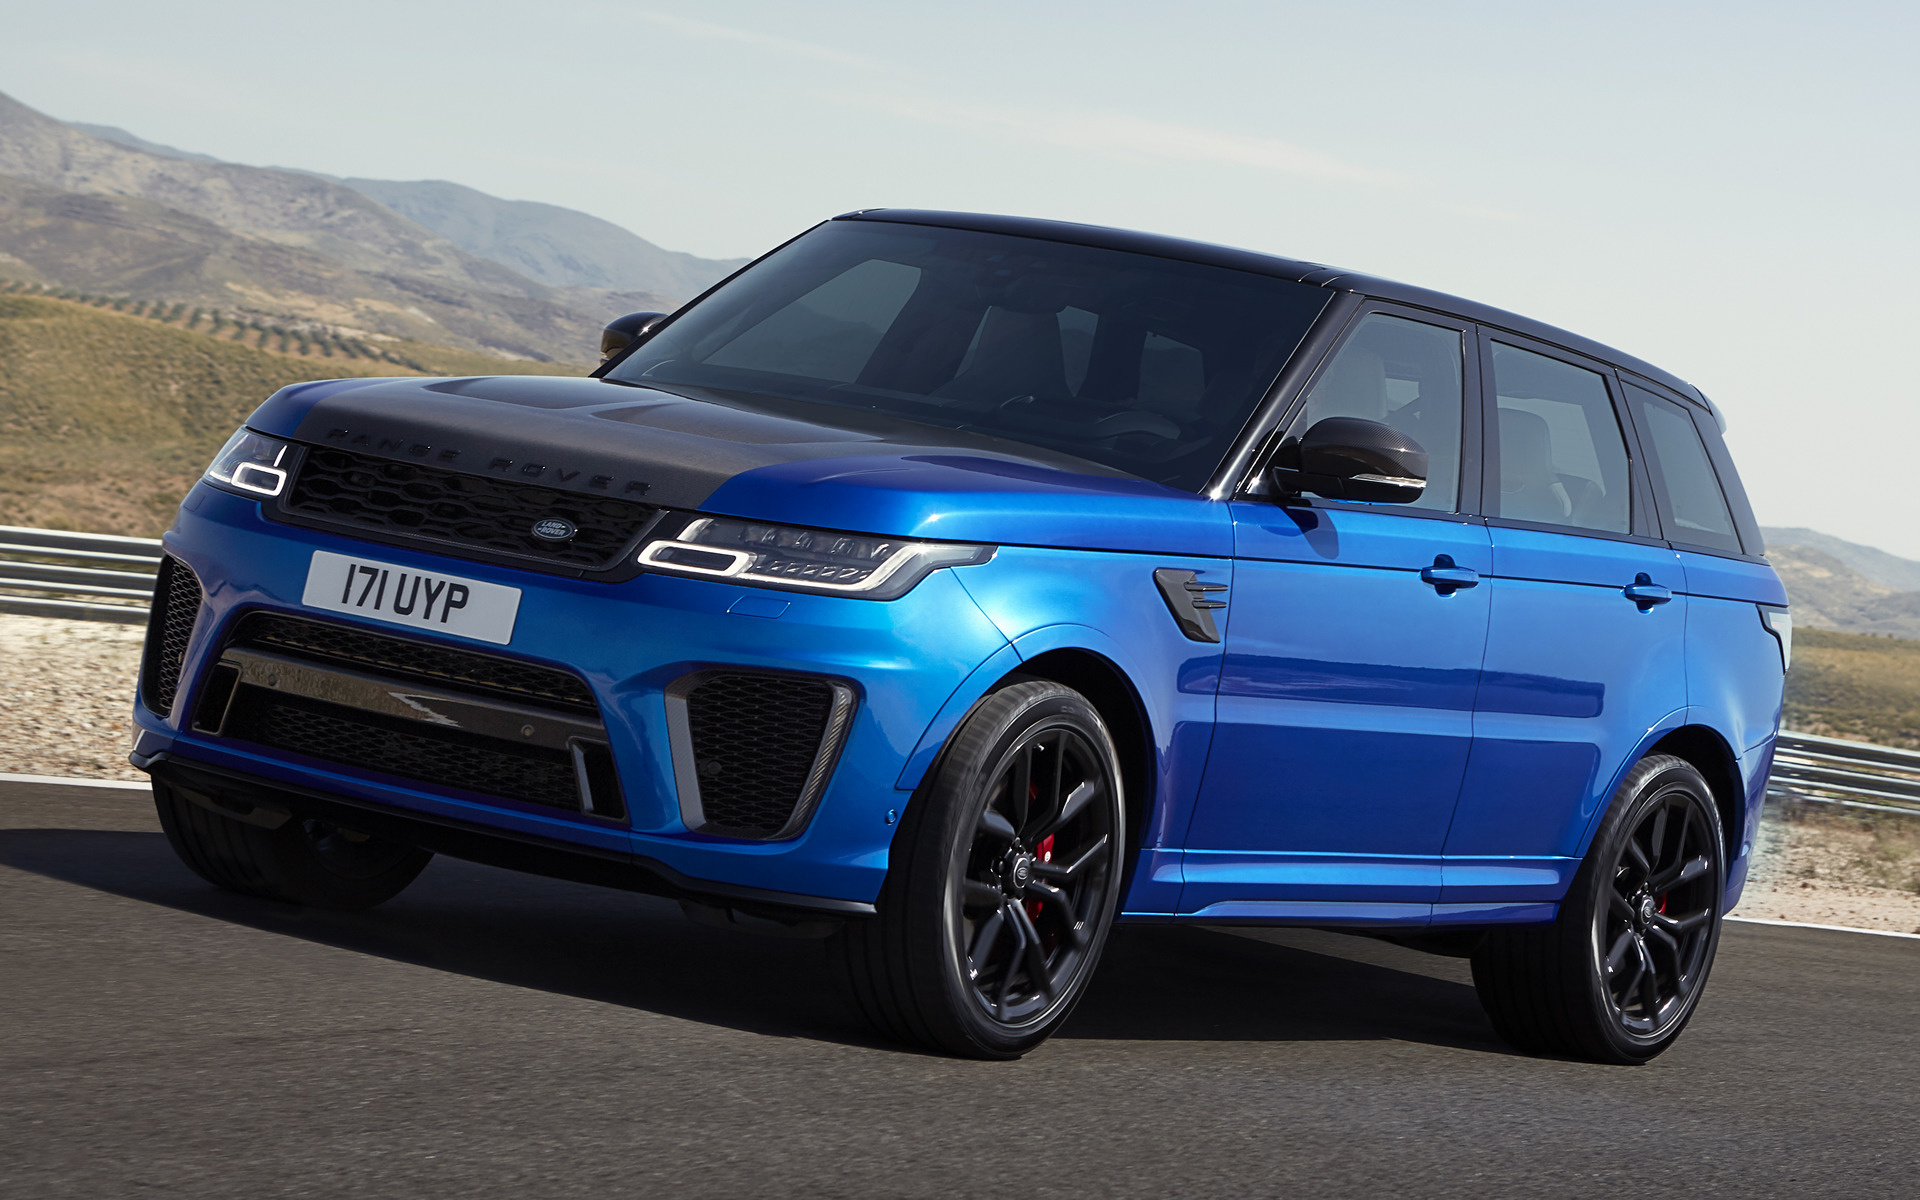 Hd Hybrid Car Wallpaper 2017 Range Rover Sport Svr Wallpapers And Hd Images